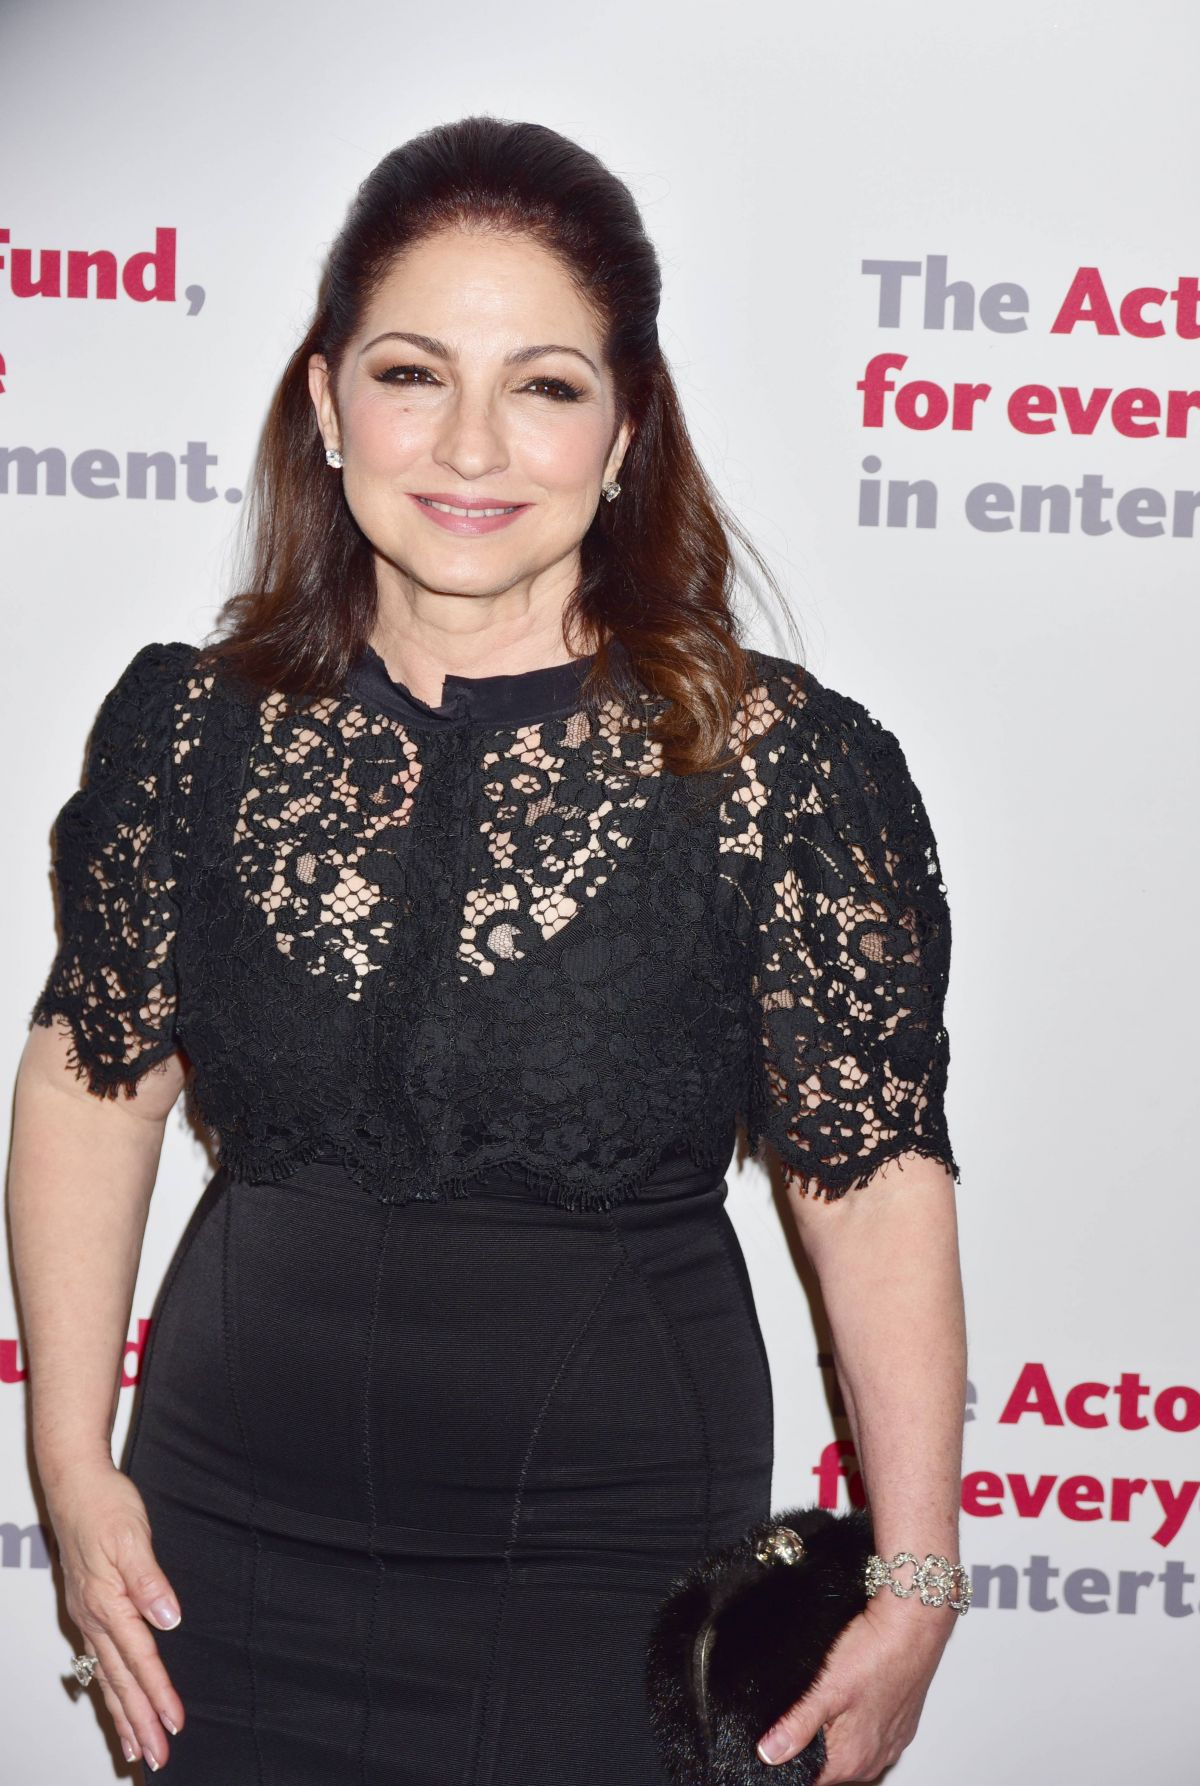 GLORIA ESTEFAN at Actors Fund 2016 Gala in New York 04/25/2016